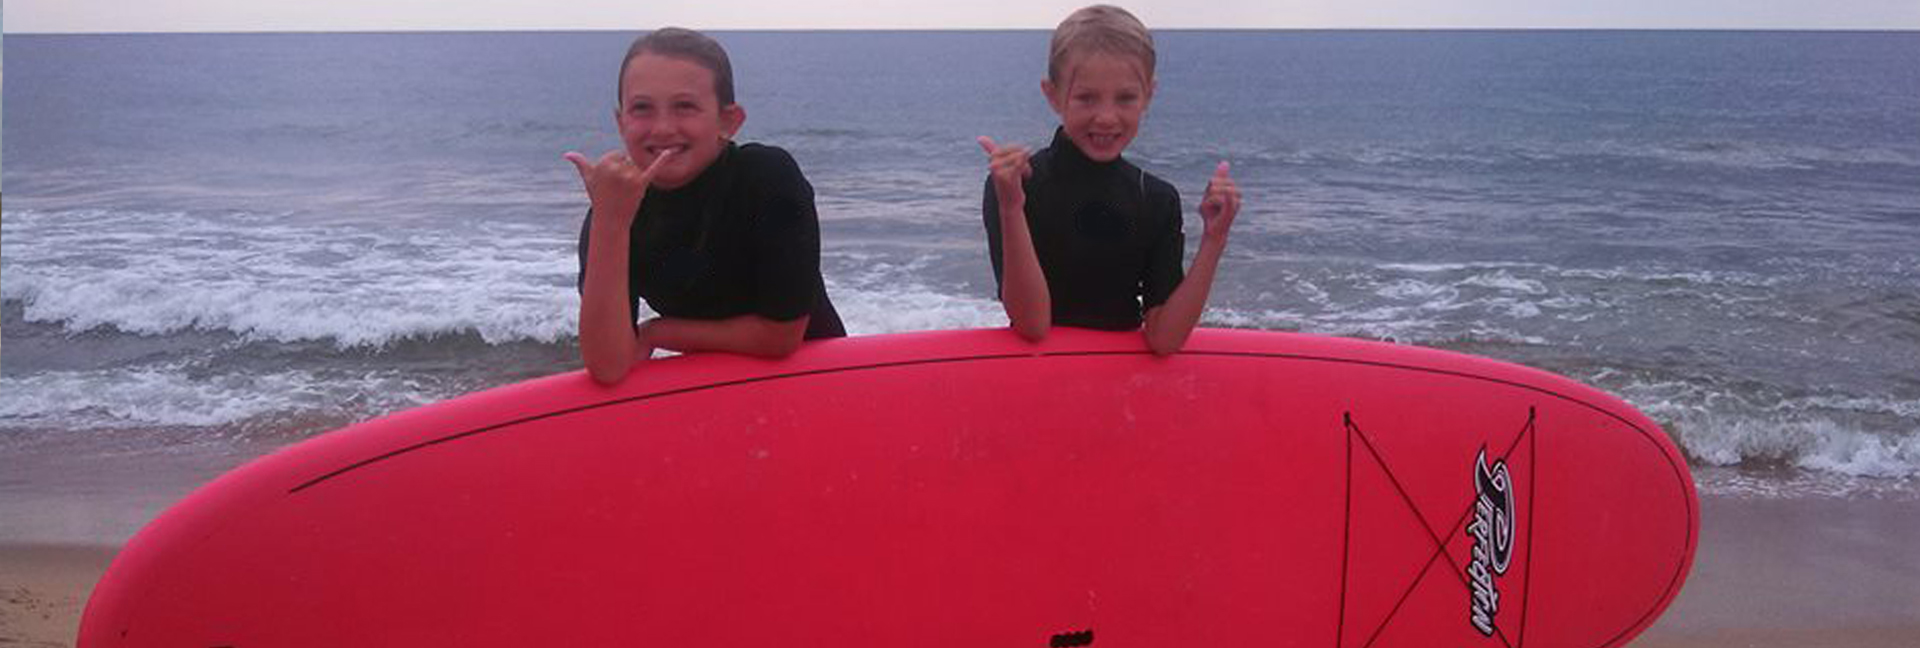 boy and girl pose behind a red surboard with a thumbs up